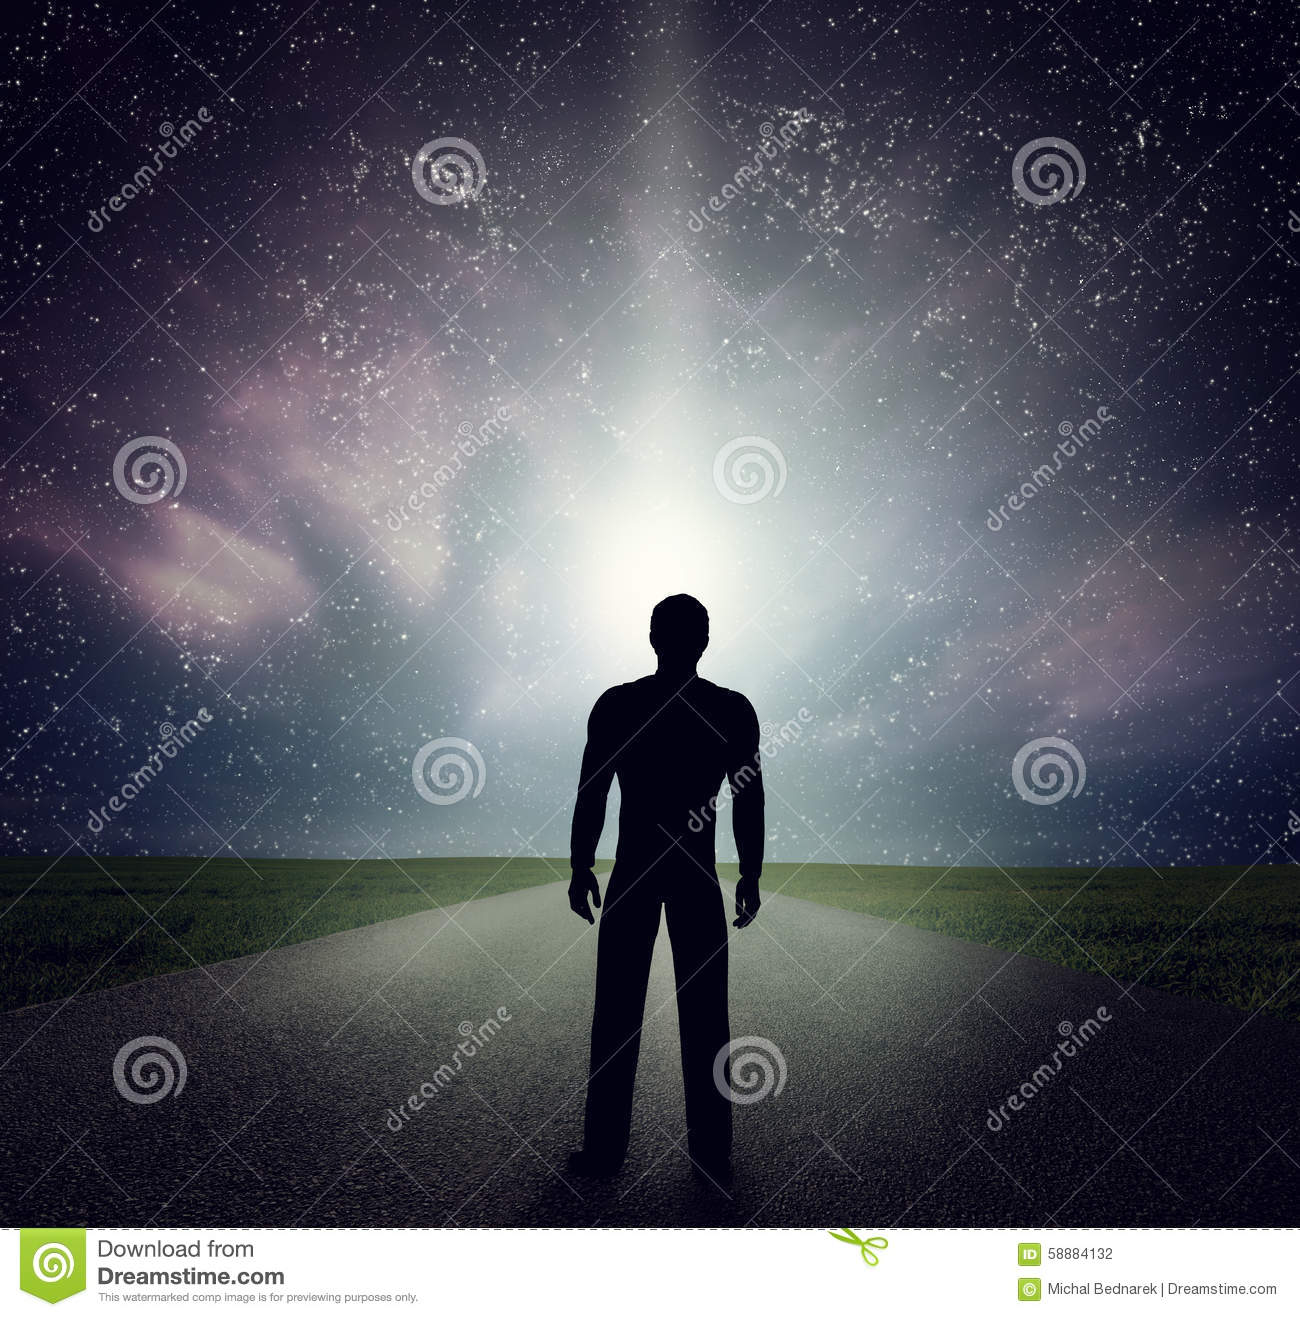 Man standing on the road looking at stars, sky, universe. Dream, adventure.